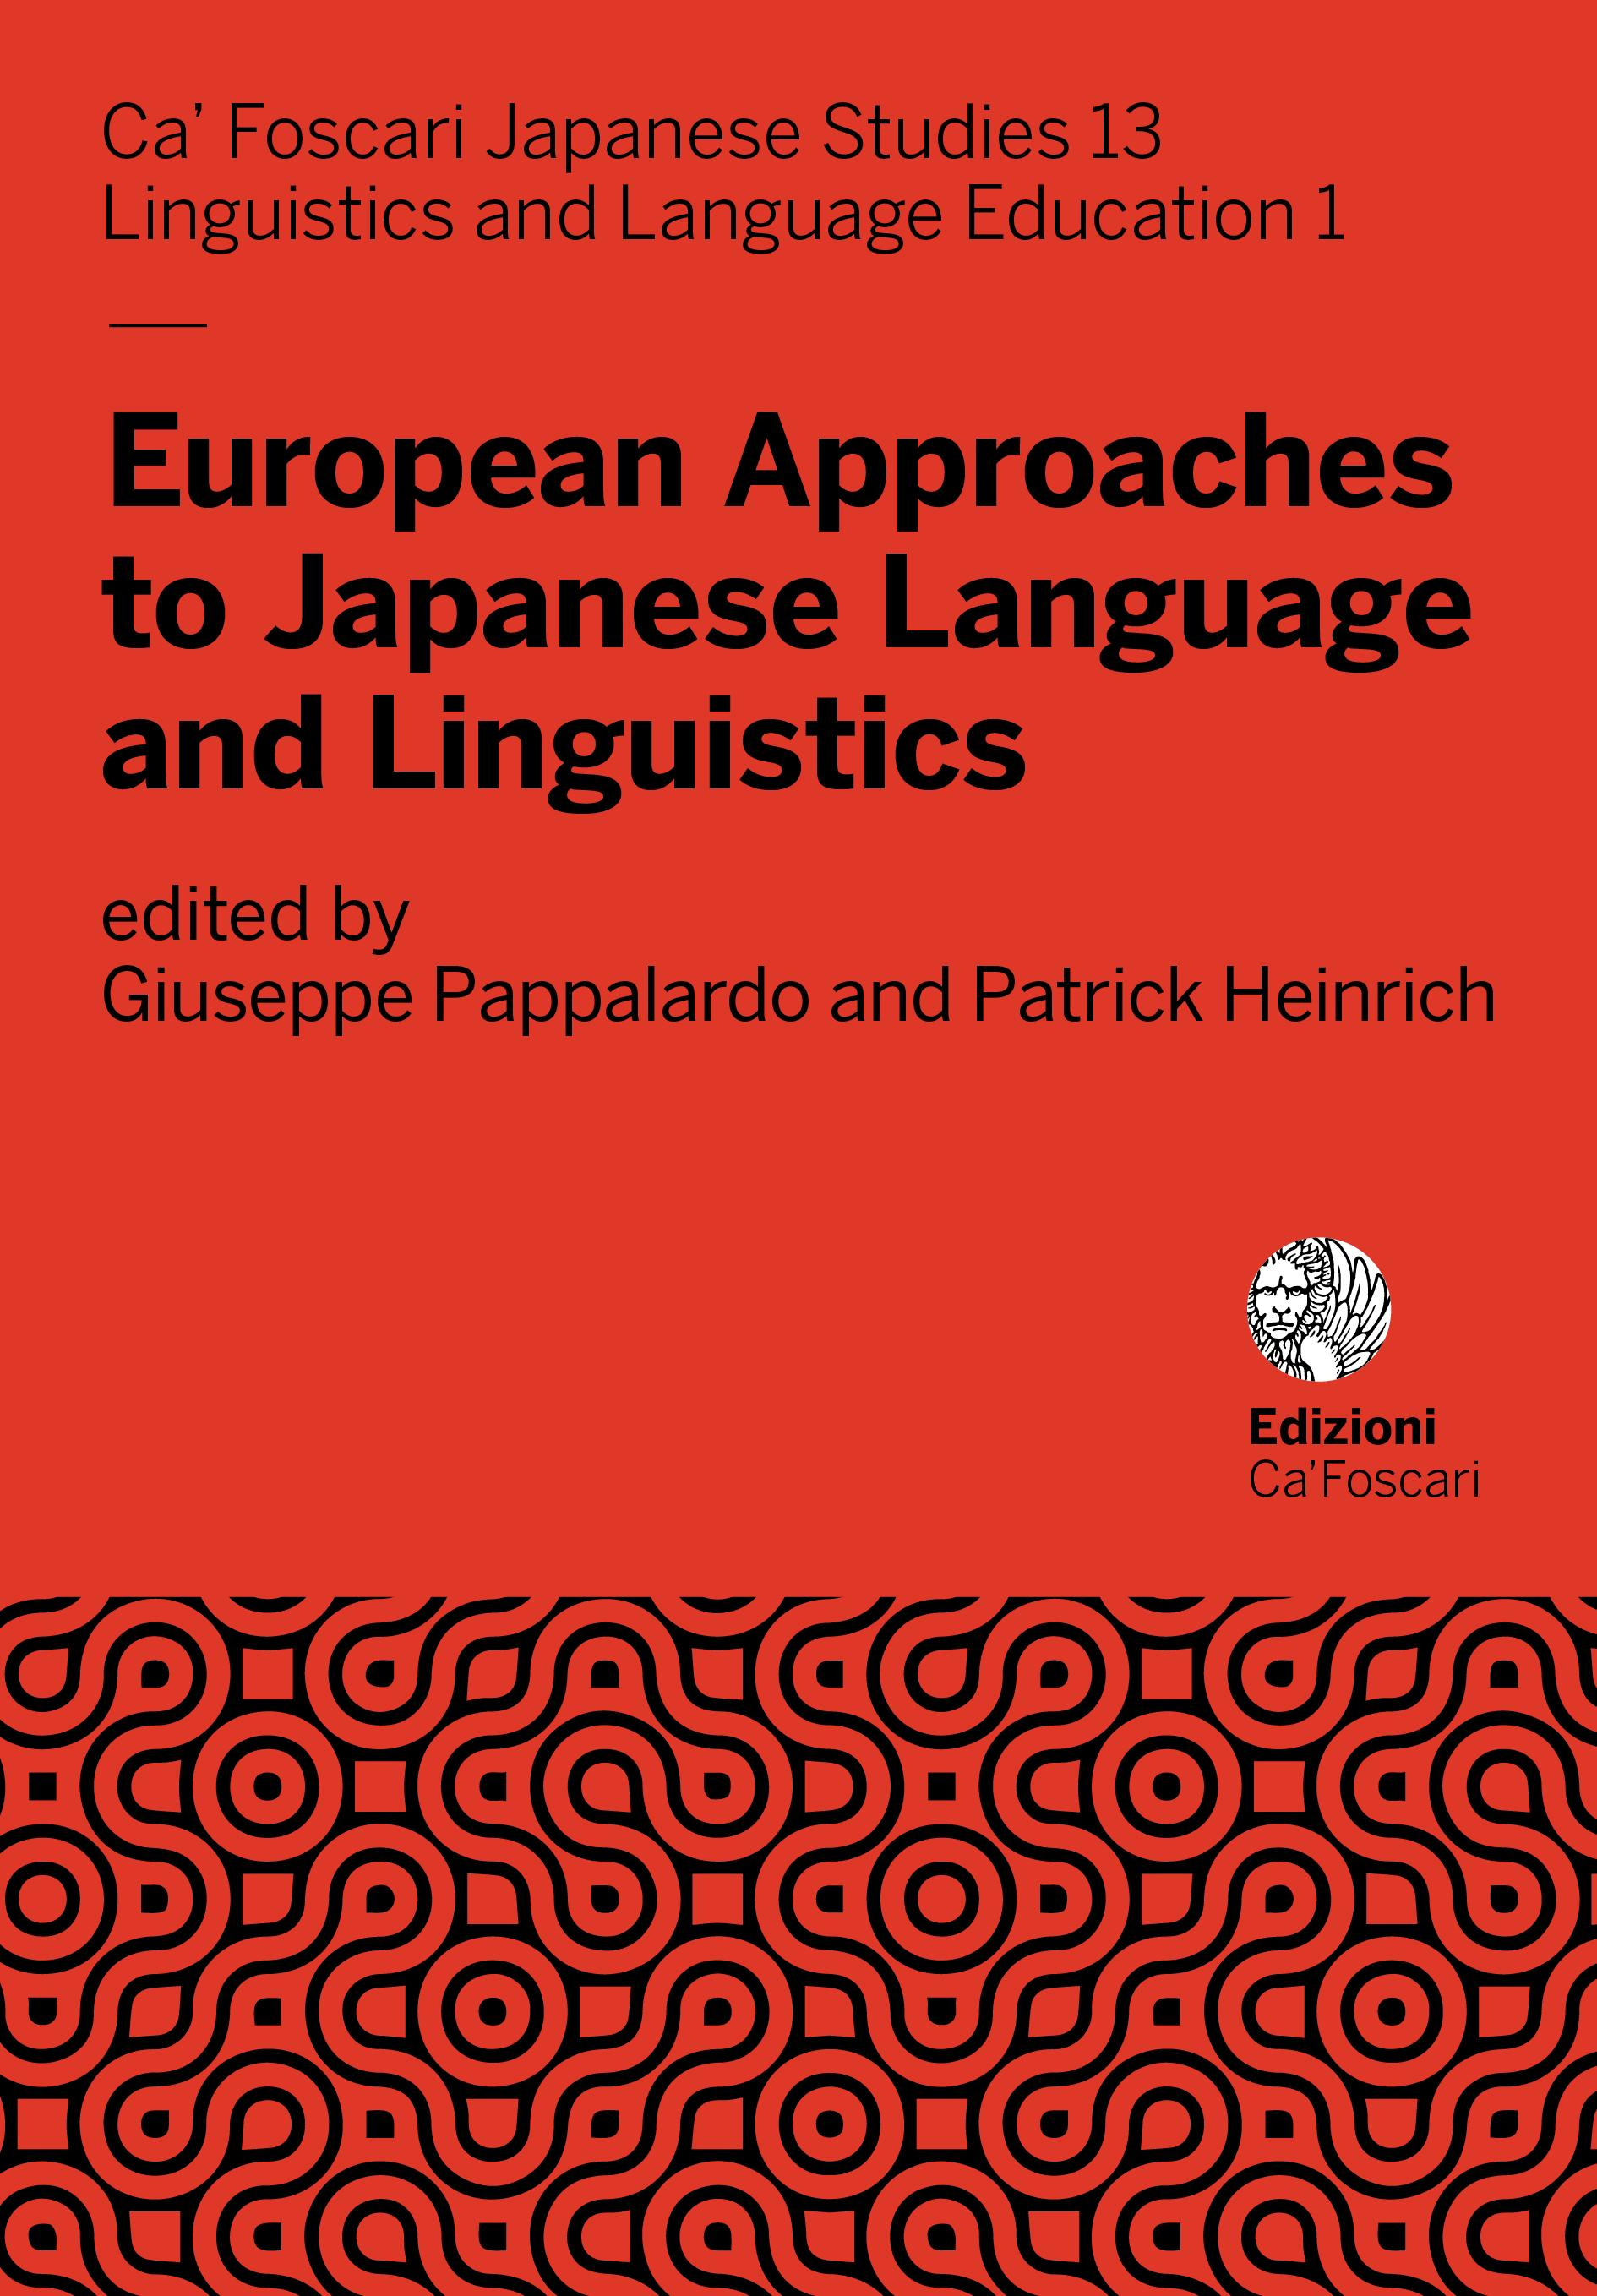 European Approaches to Japanese Language and Linguistics